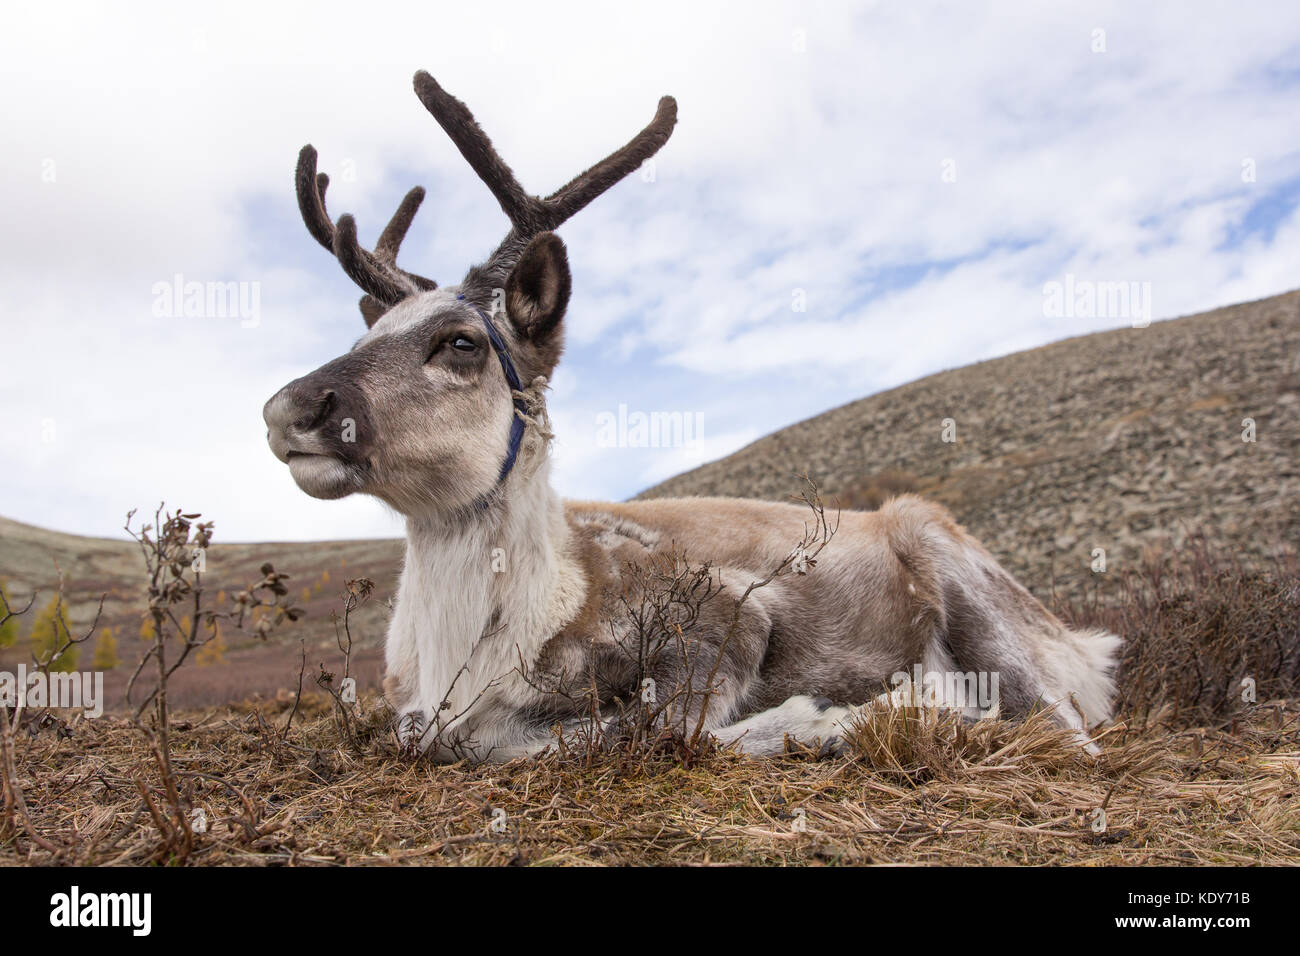 Portrait of a young reindeer sleeping on an autumn morning. Khuvsgol, Mongolia. - Stock Image